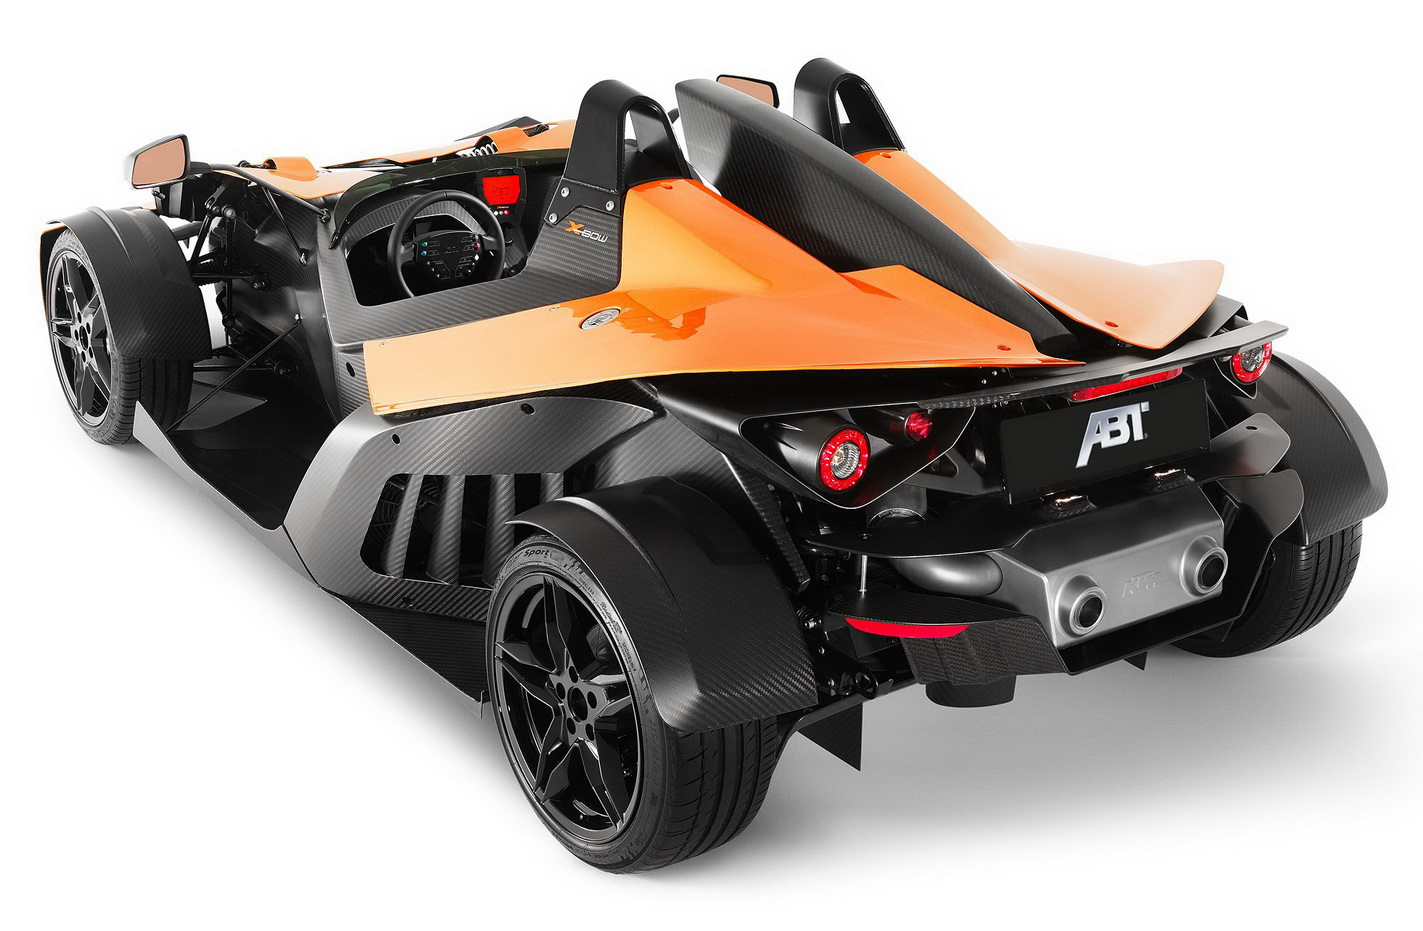 the motoroad ktm x bow the ktm car. Black Bedroom Furniture Sets. Home Design Ideas